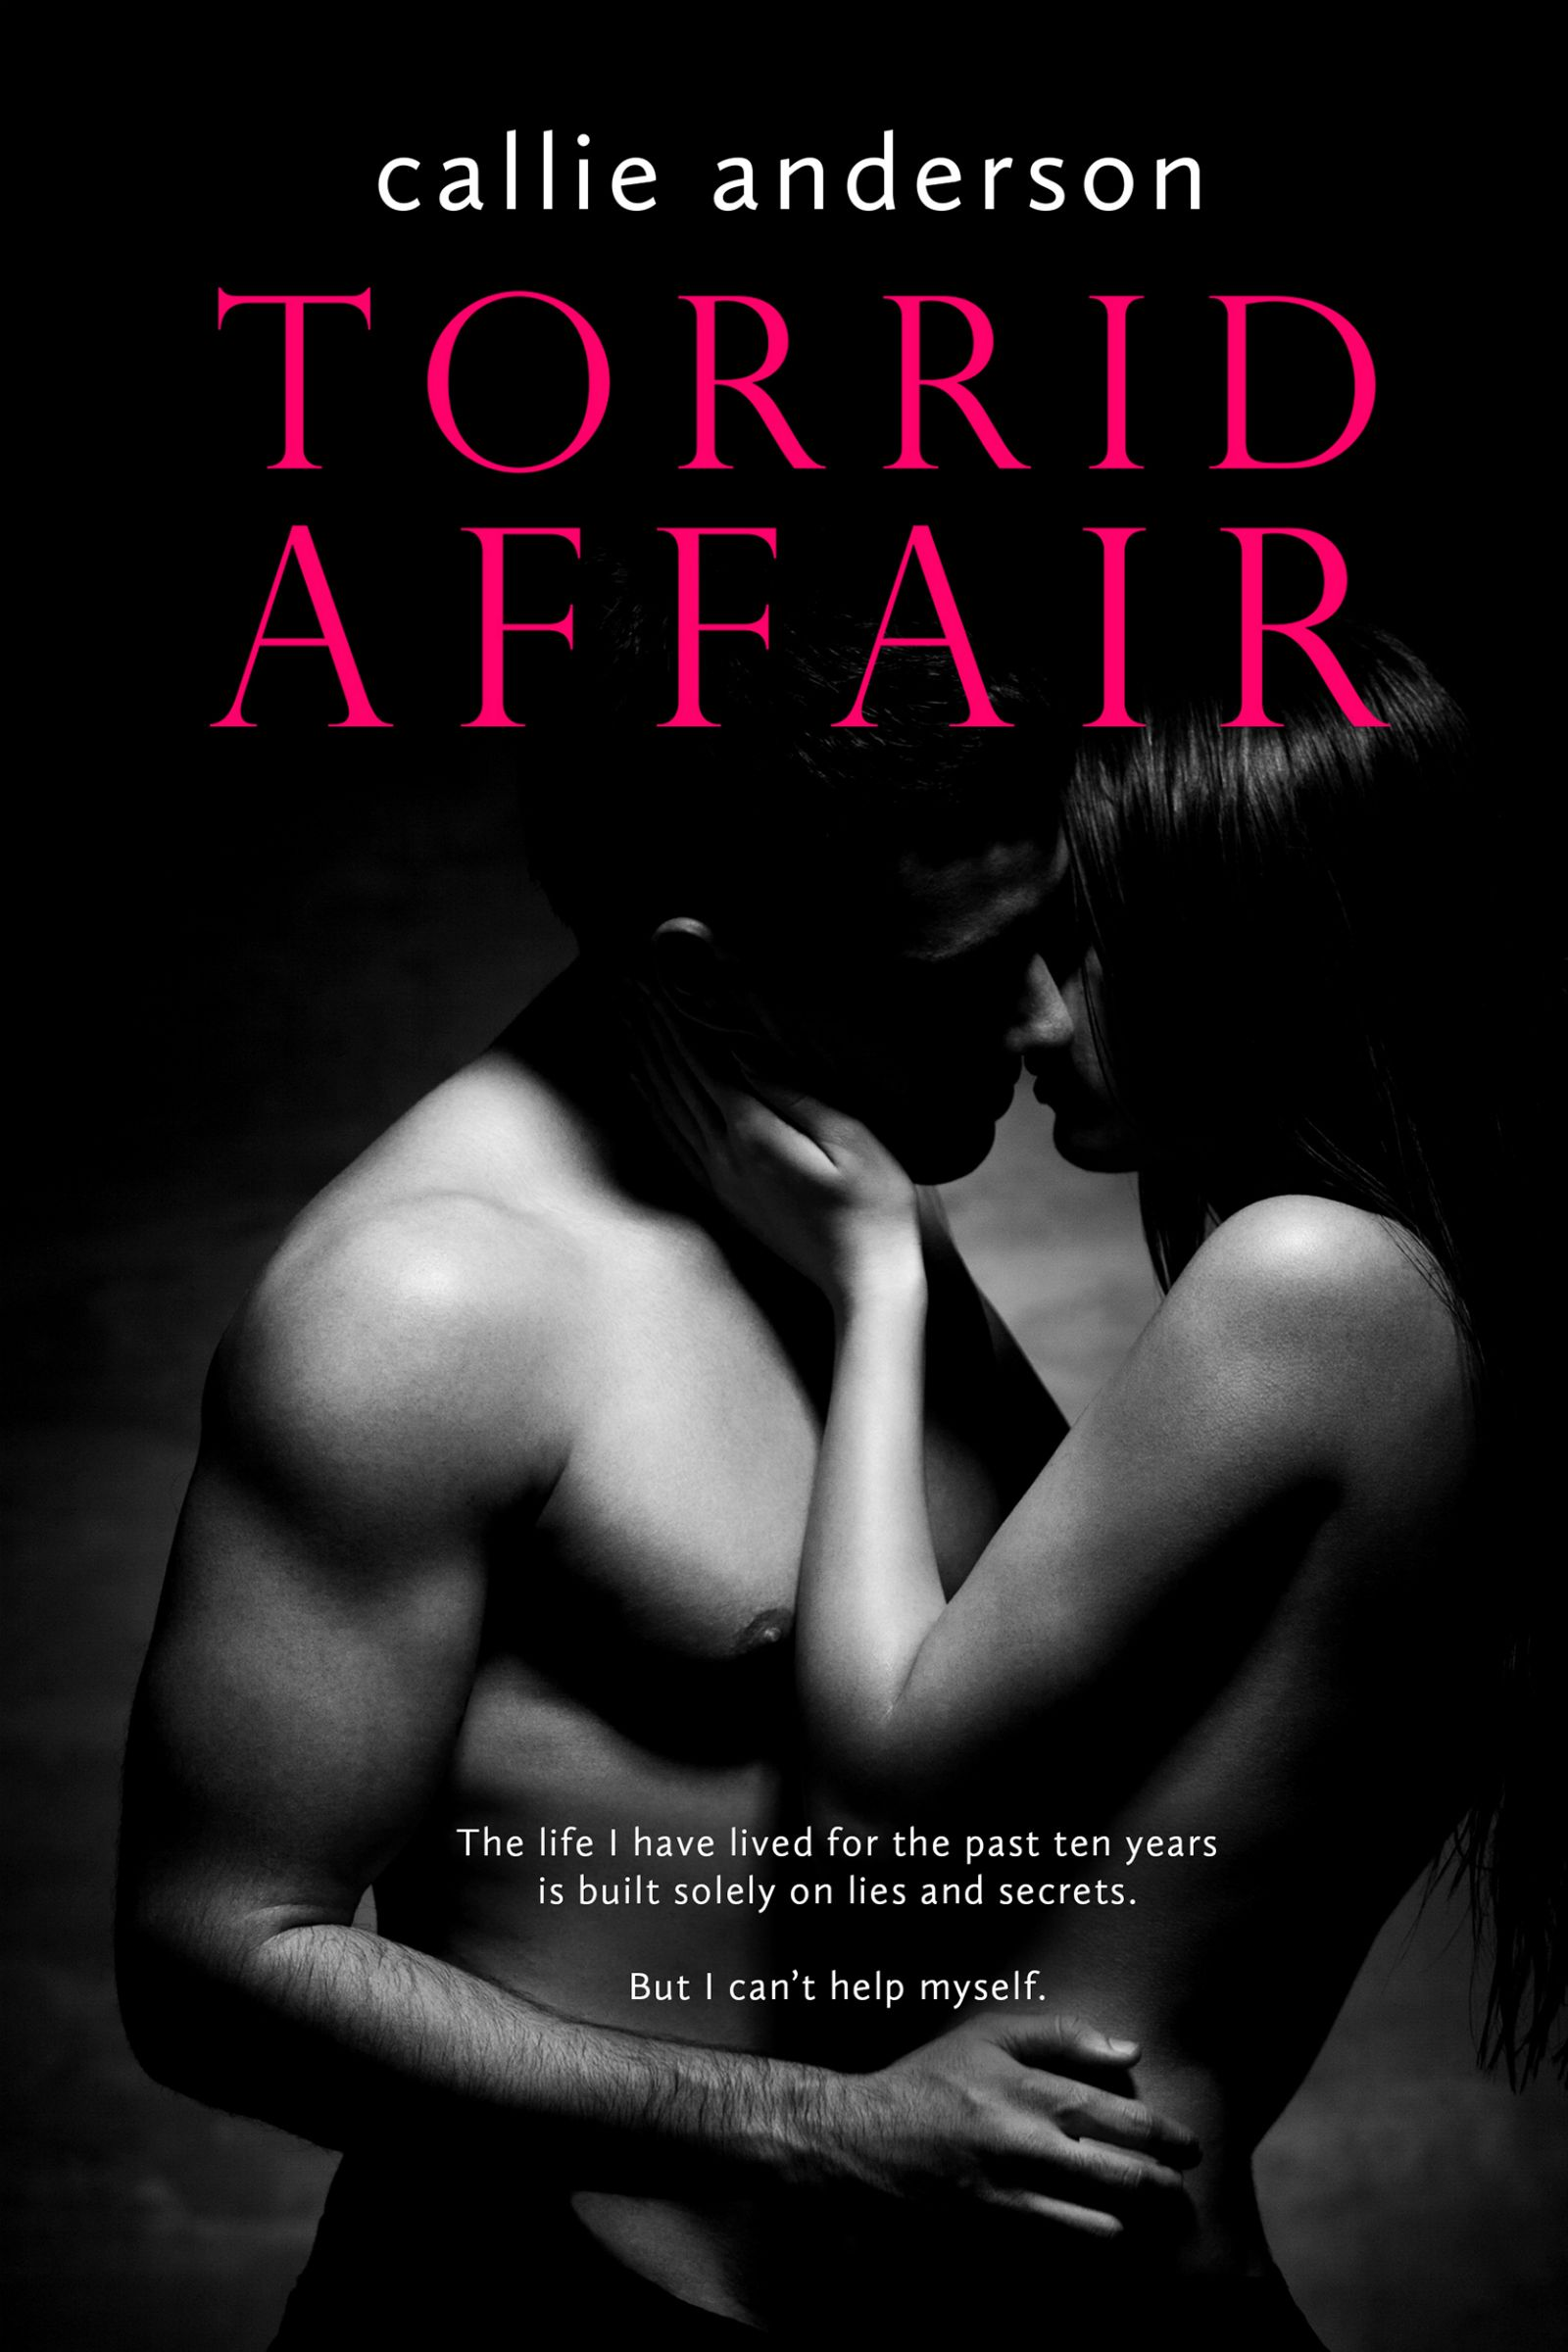 Torrid Affair by Callie Anderson | Release Date September 13, 2016 | Genres: Contemporary Romance, Erotic Romance